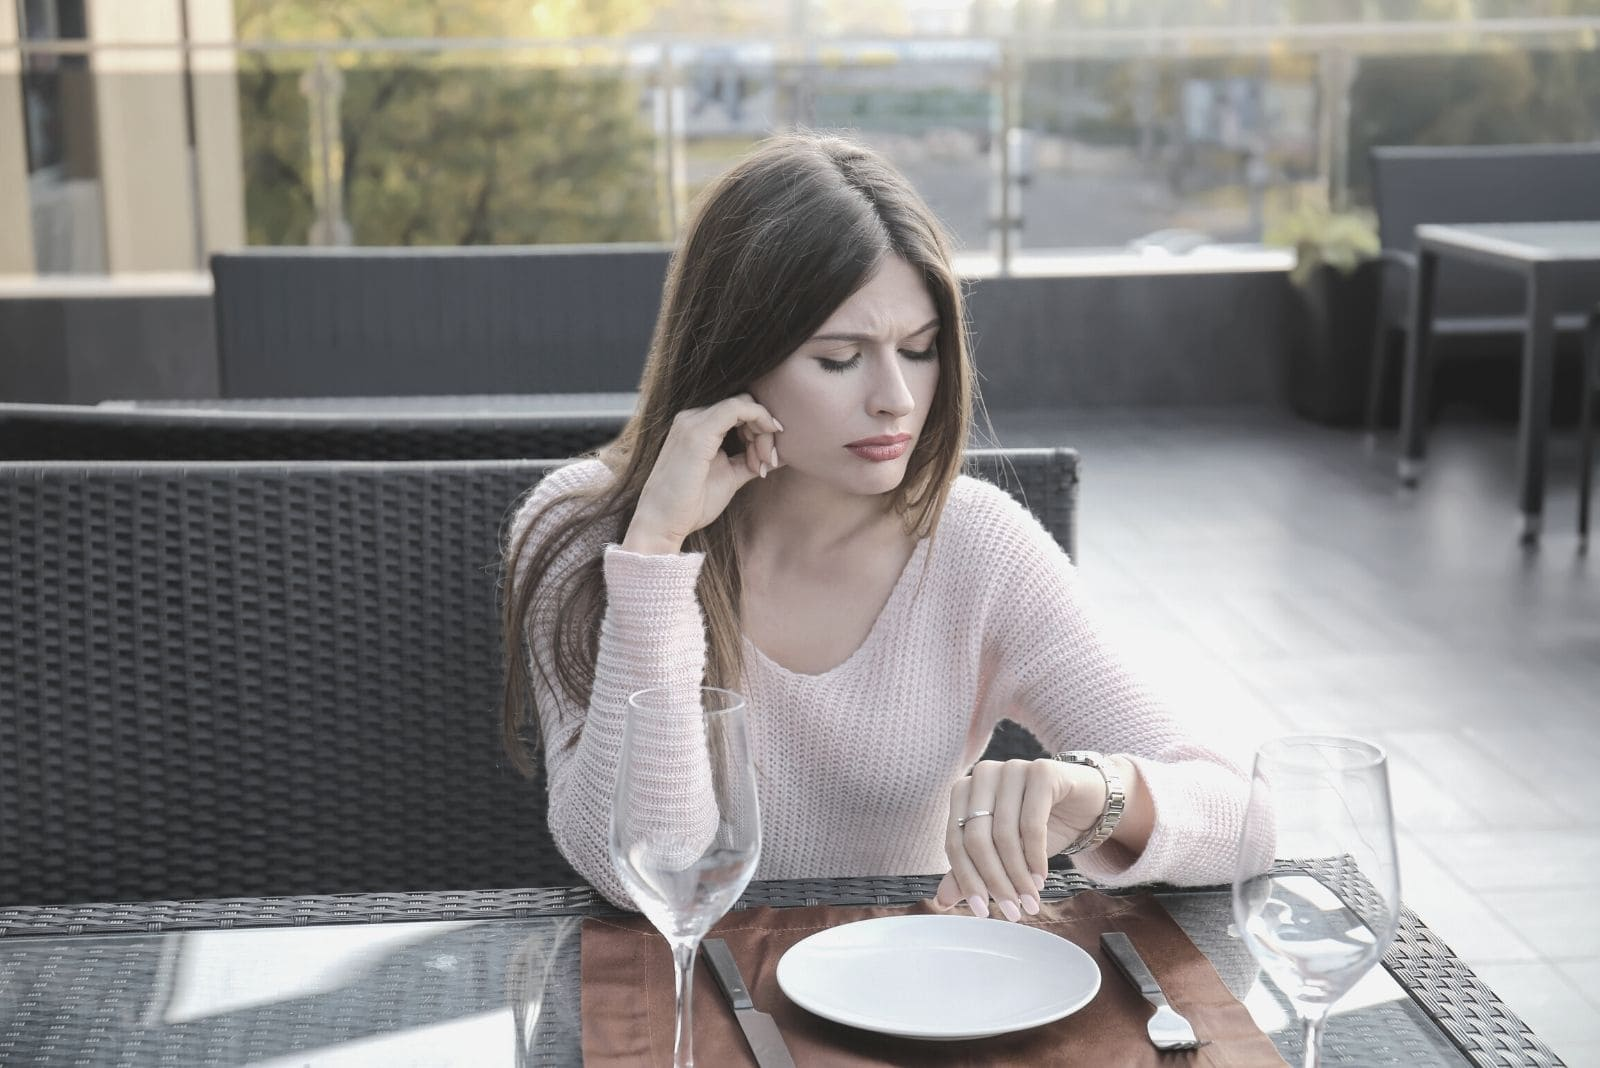 young woman looking at her watch while waiting for someone at the restaurant